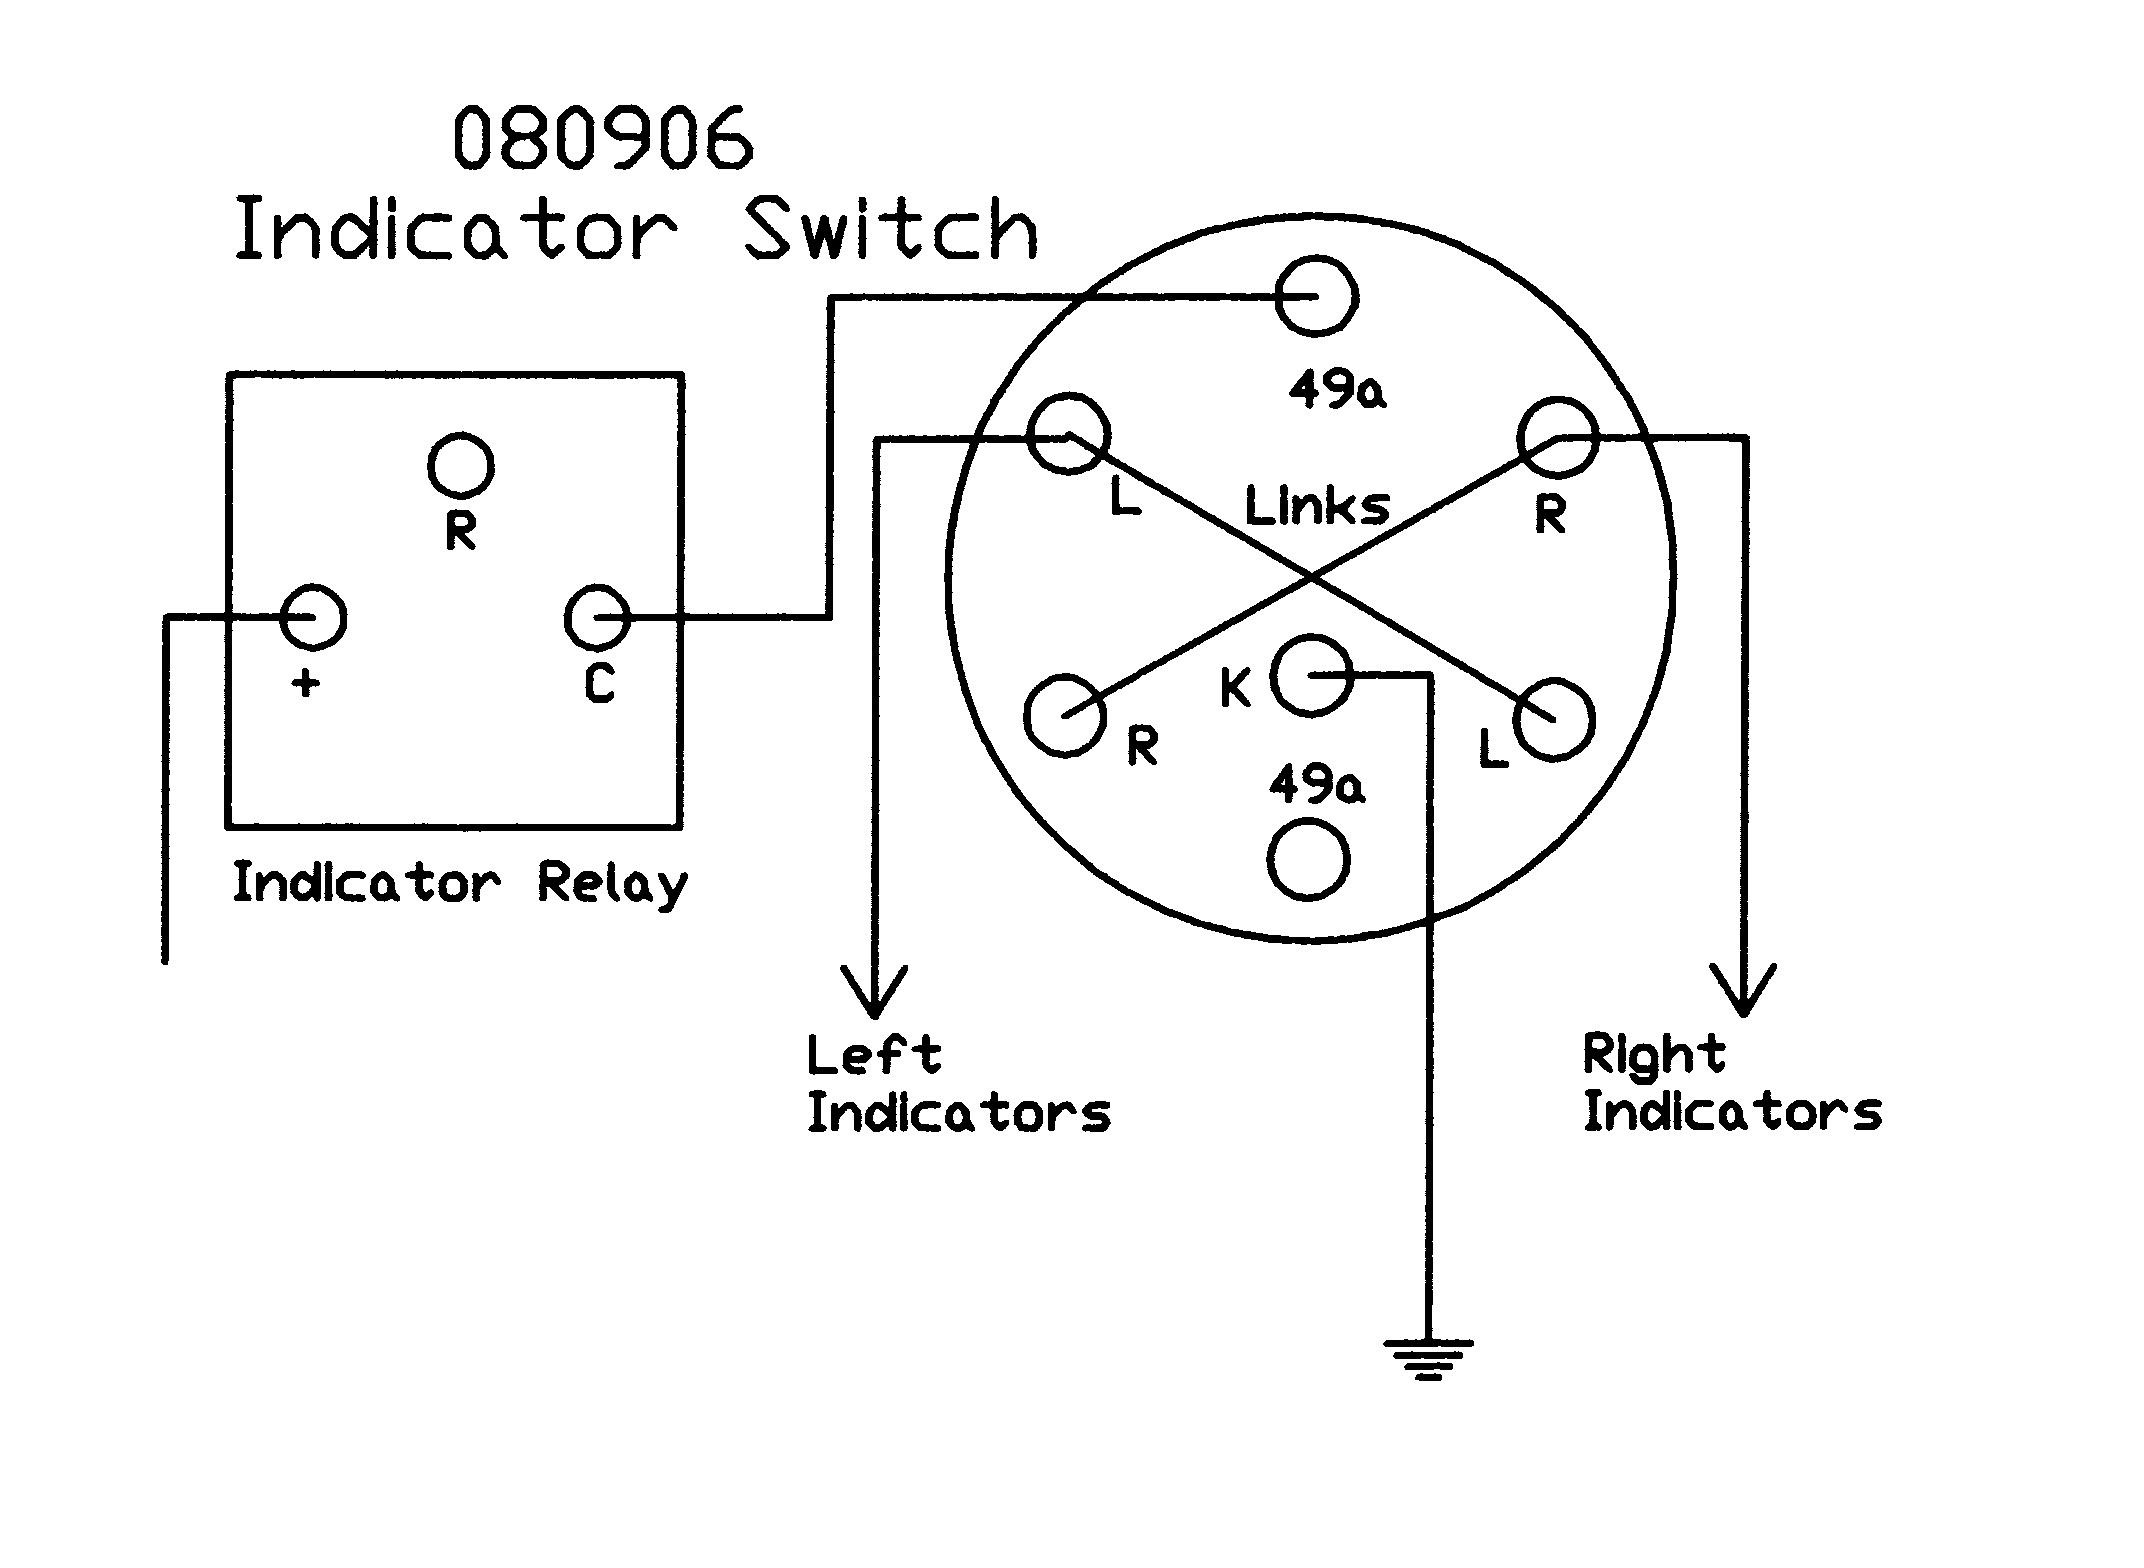 080906_wiring_diagram rotary switch black plastic lever and integral red warning lamp rotary switch wiring diagram at virtualis.co